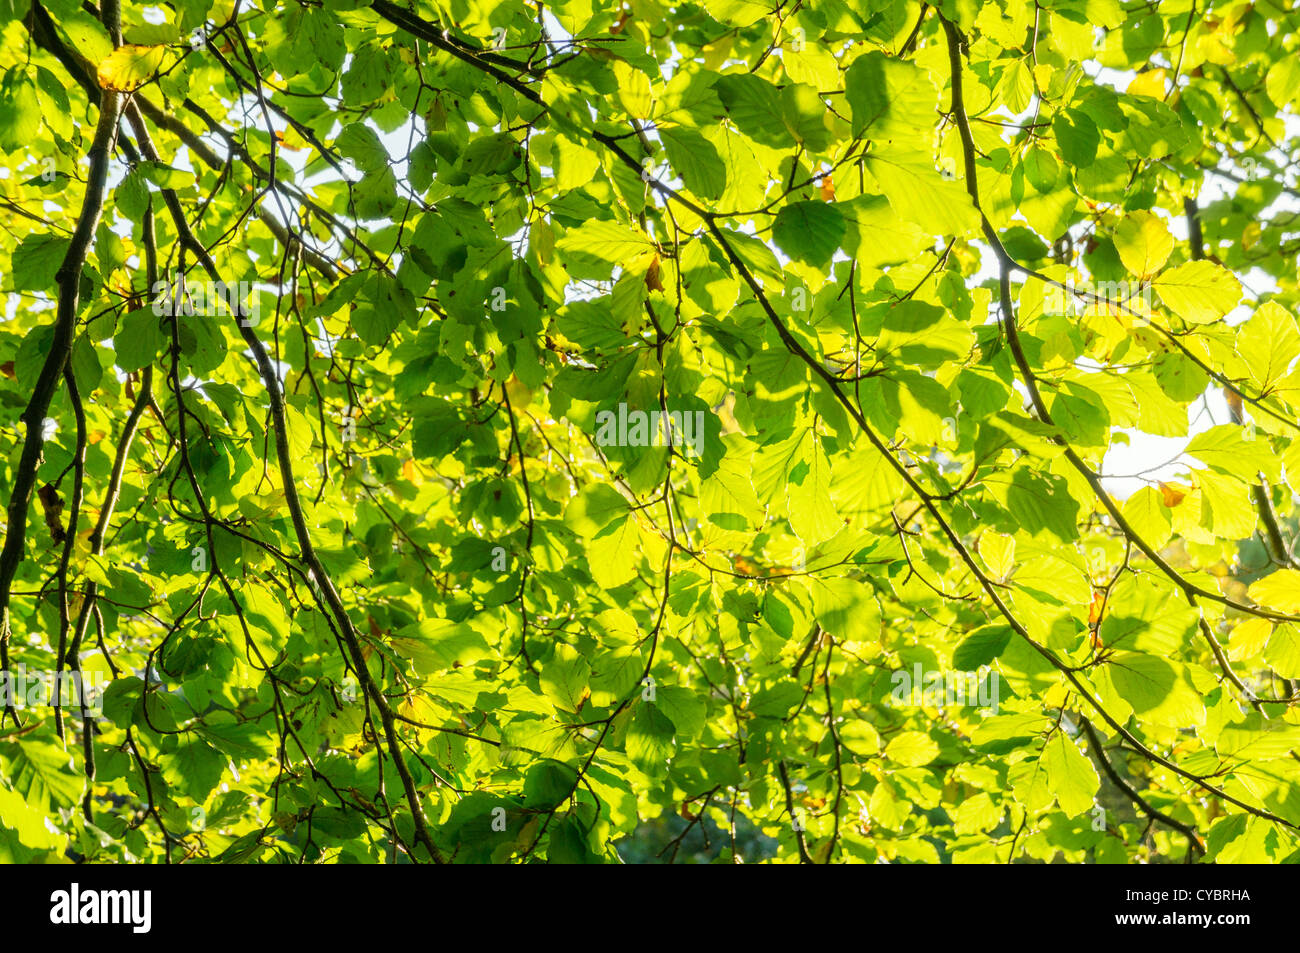 Sunlight shining through leaves on a tree trees - Stock Image